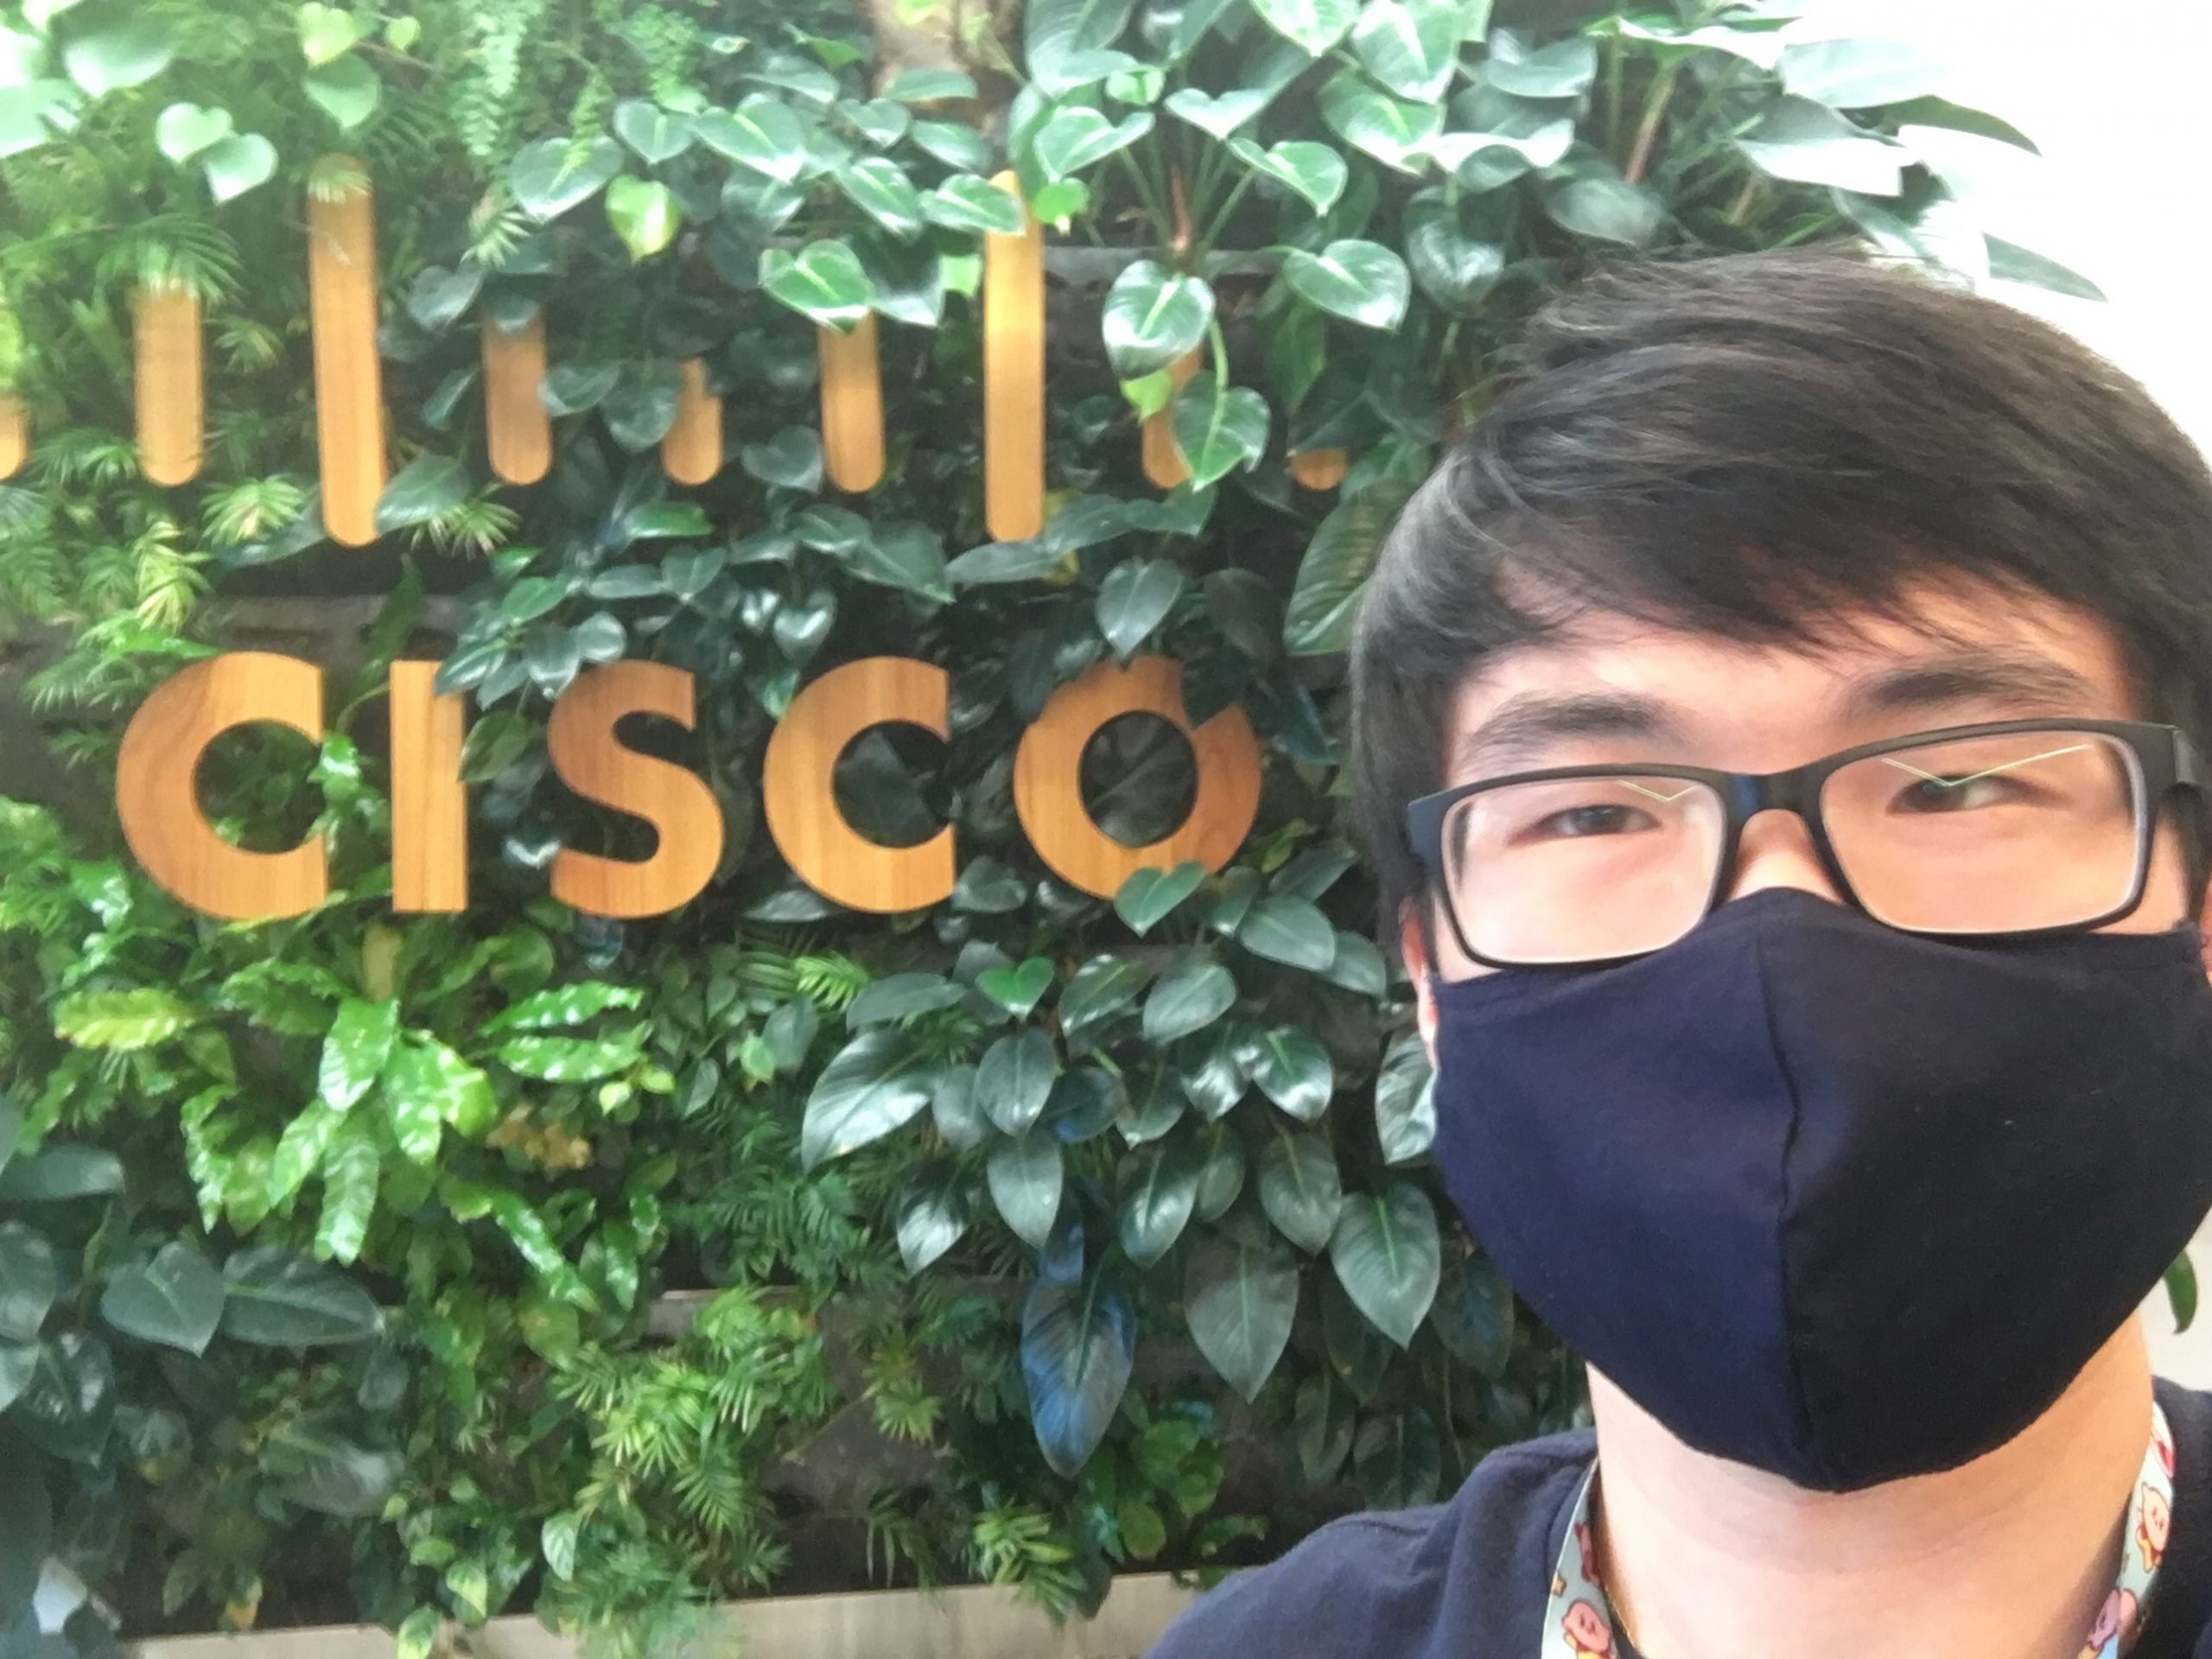 Bryce with mask in front of Cisco sign.